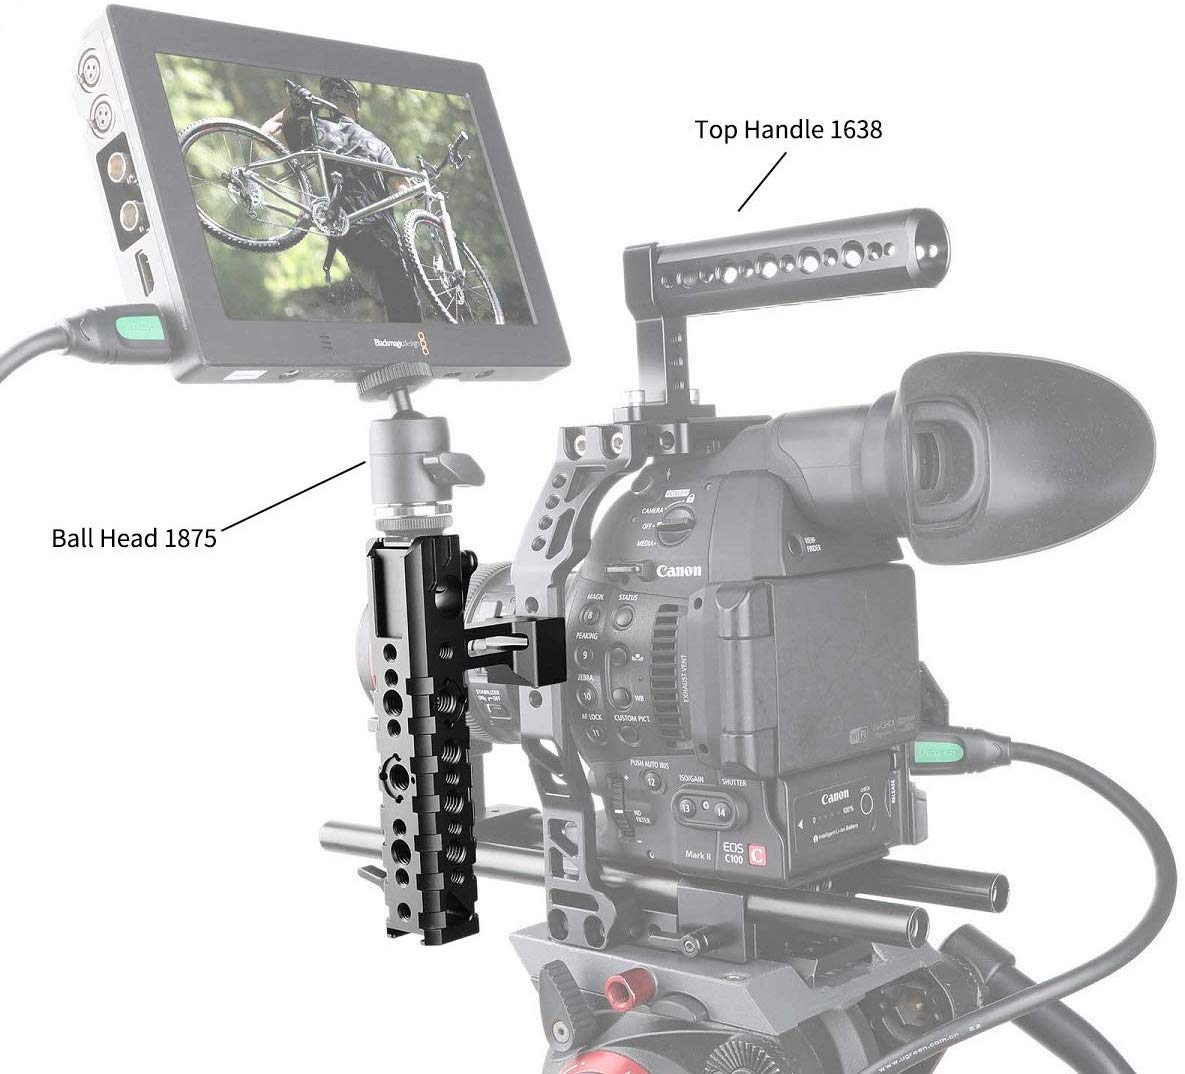 SMALLRIG QR Cheese NATO Side Handle with 15mm Rod Clamp Built-in Cold Shoe for EVF/Microphone Shock Mount- 1688